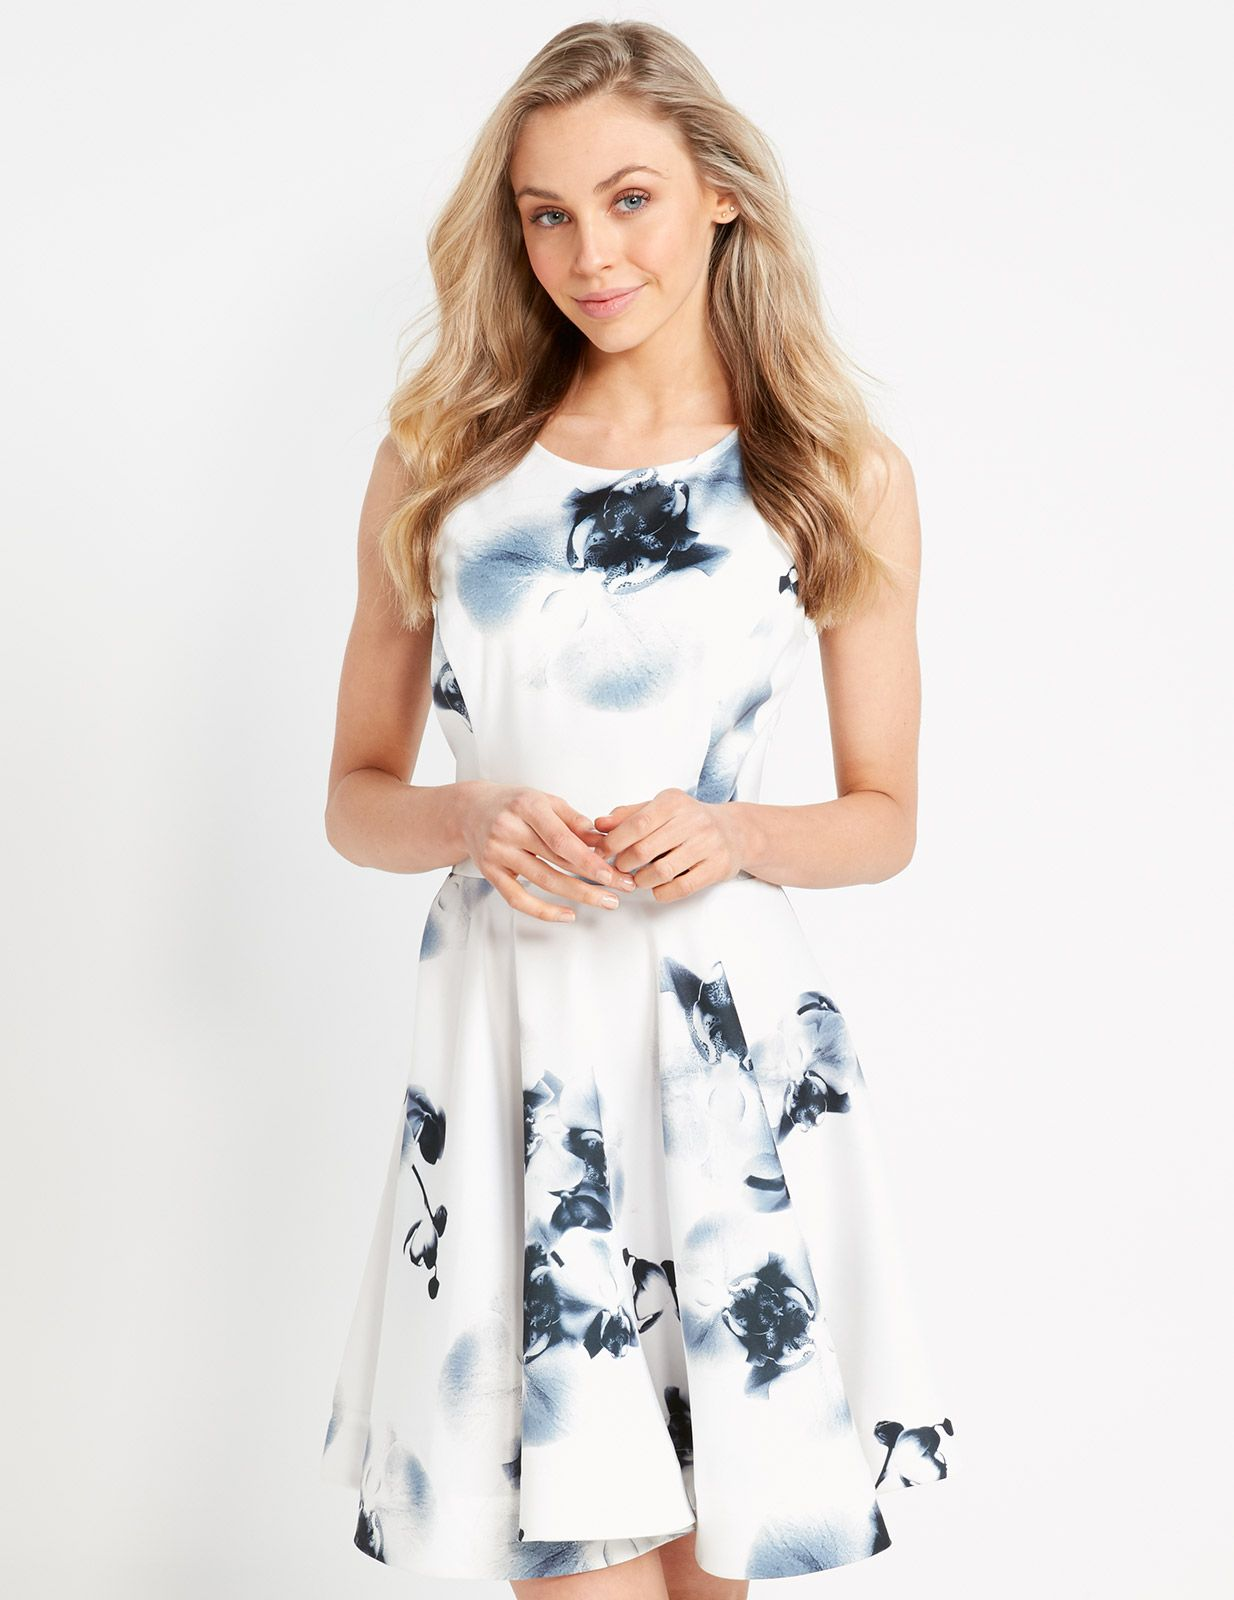 b46f5dba0cb5 Image for Polished Floral Dress from Dotti